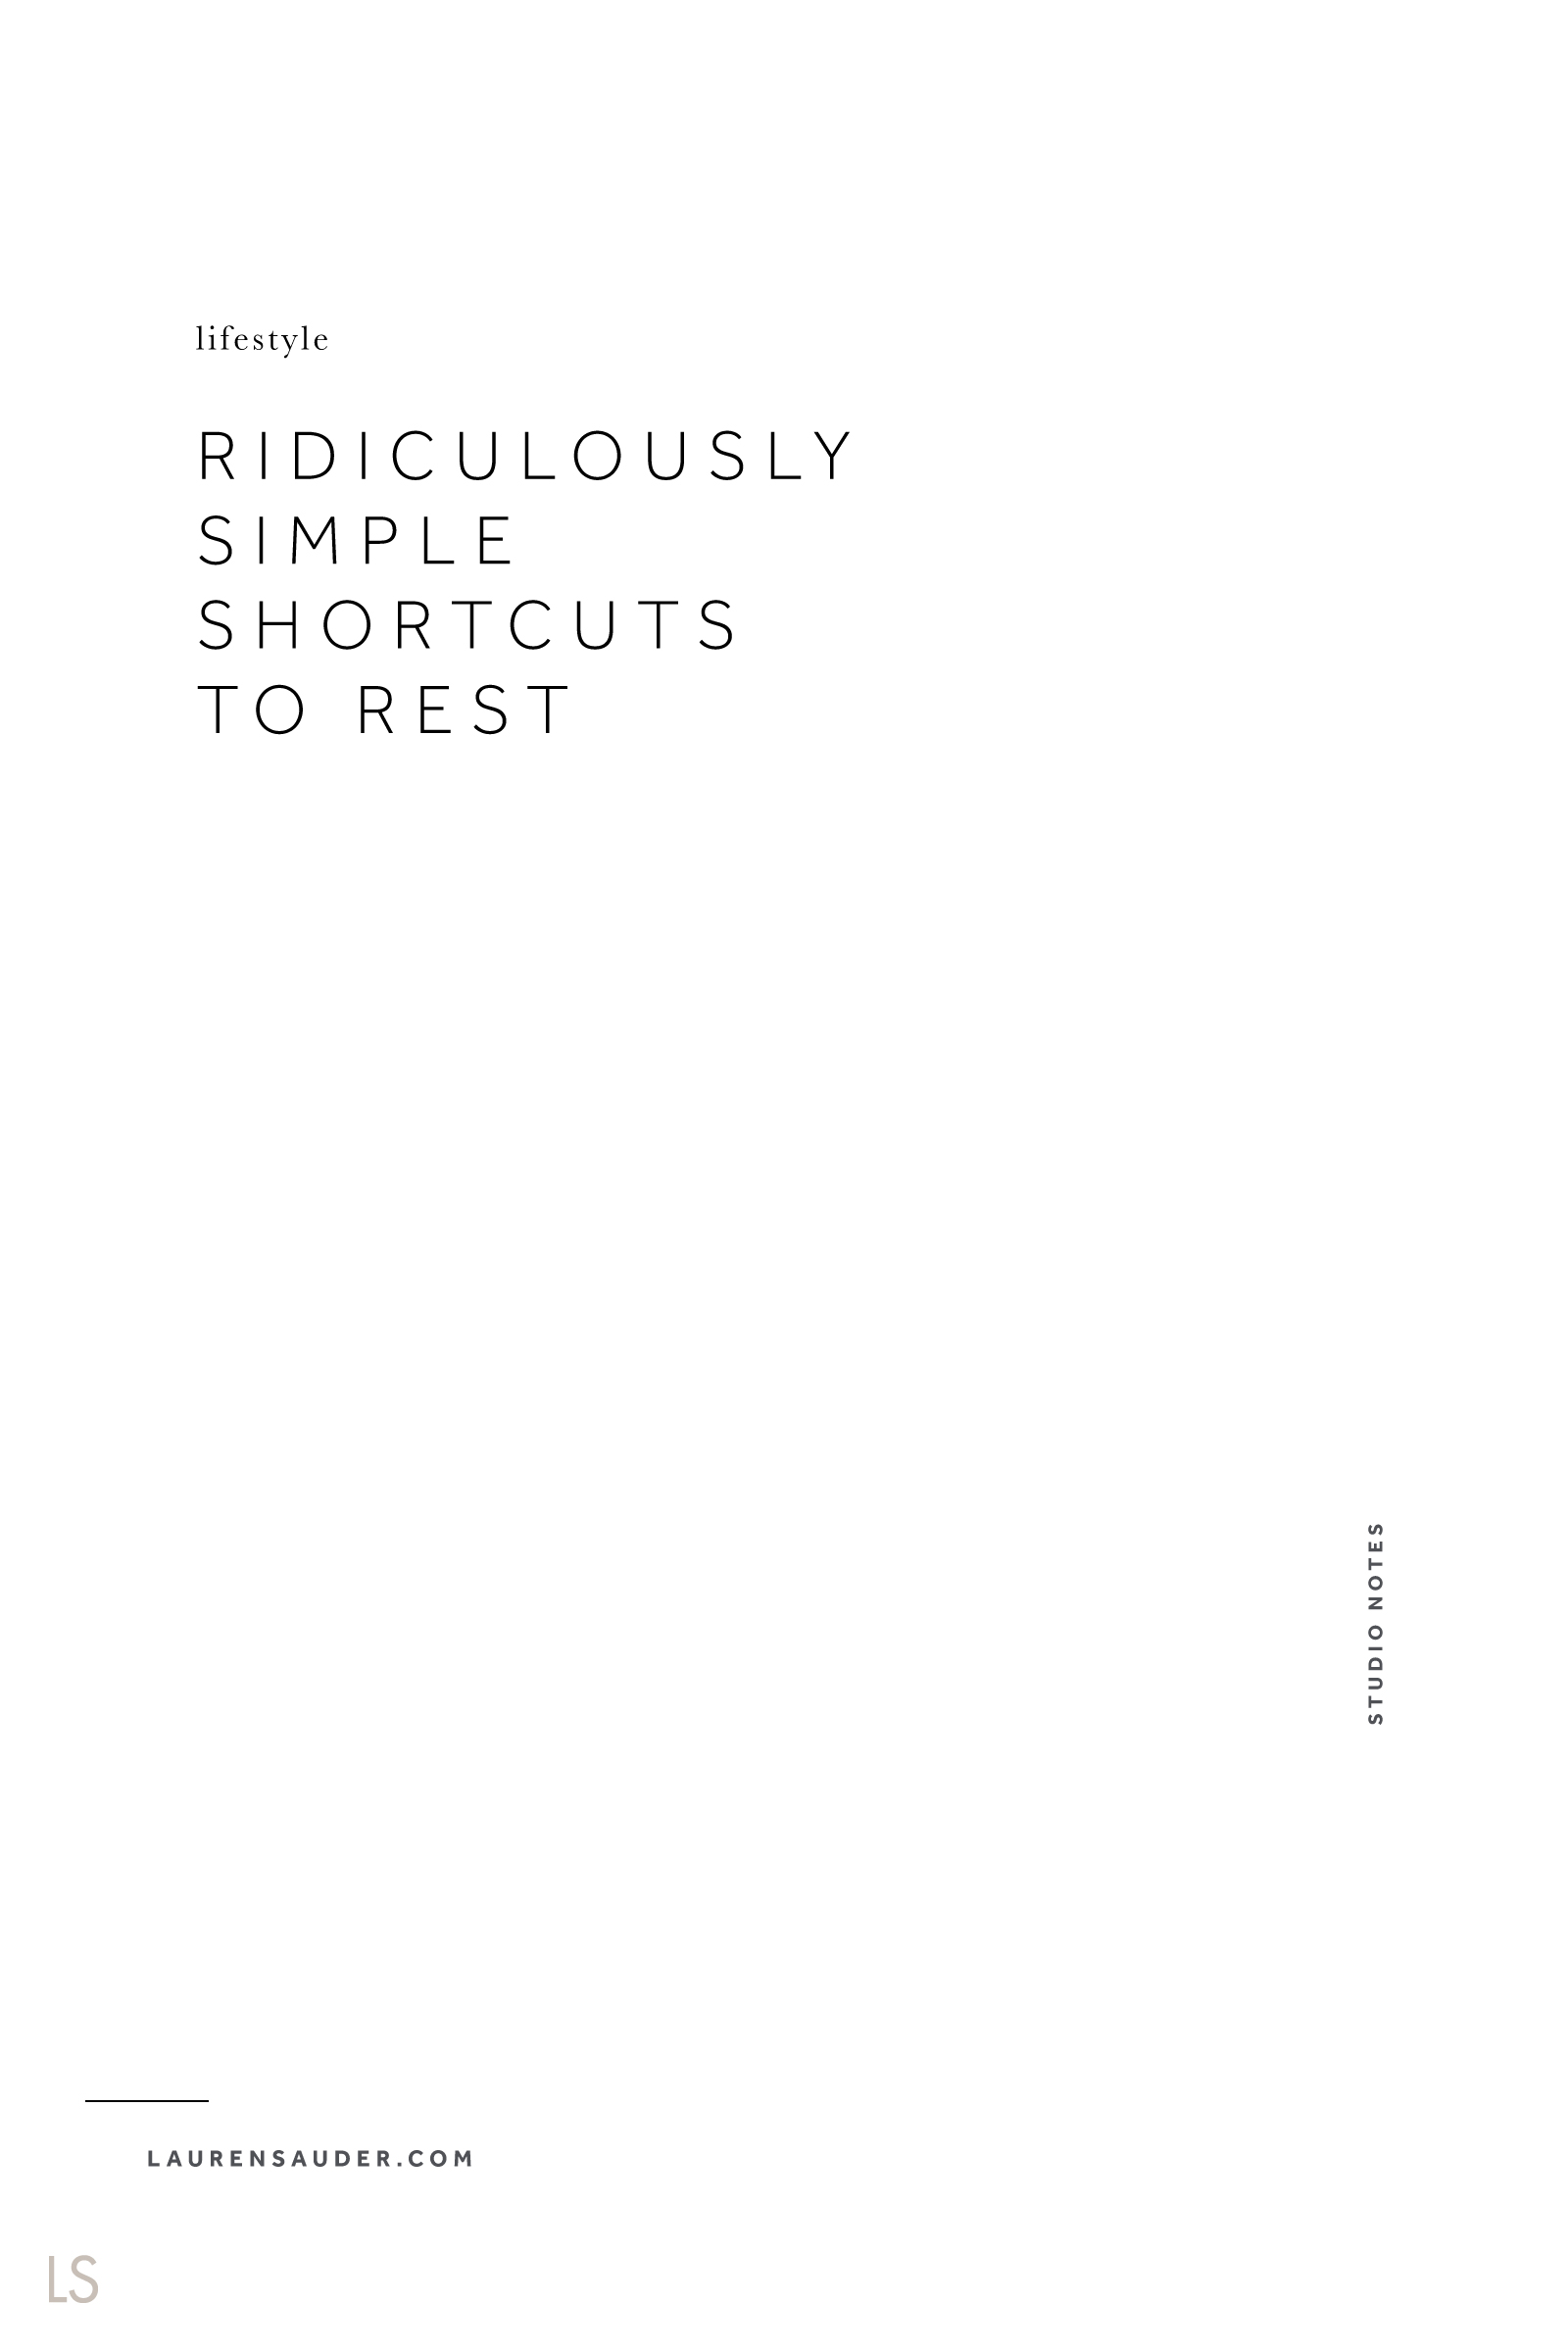 Ridiculously Simple Shortcuts to Rest - Lauren Sauder rest, relaxation, slow living, live slow, minimalism, intentional lifestyle